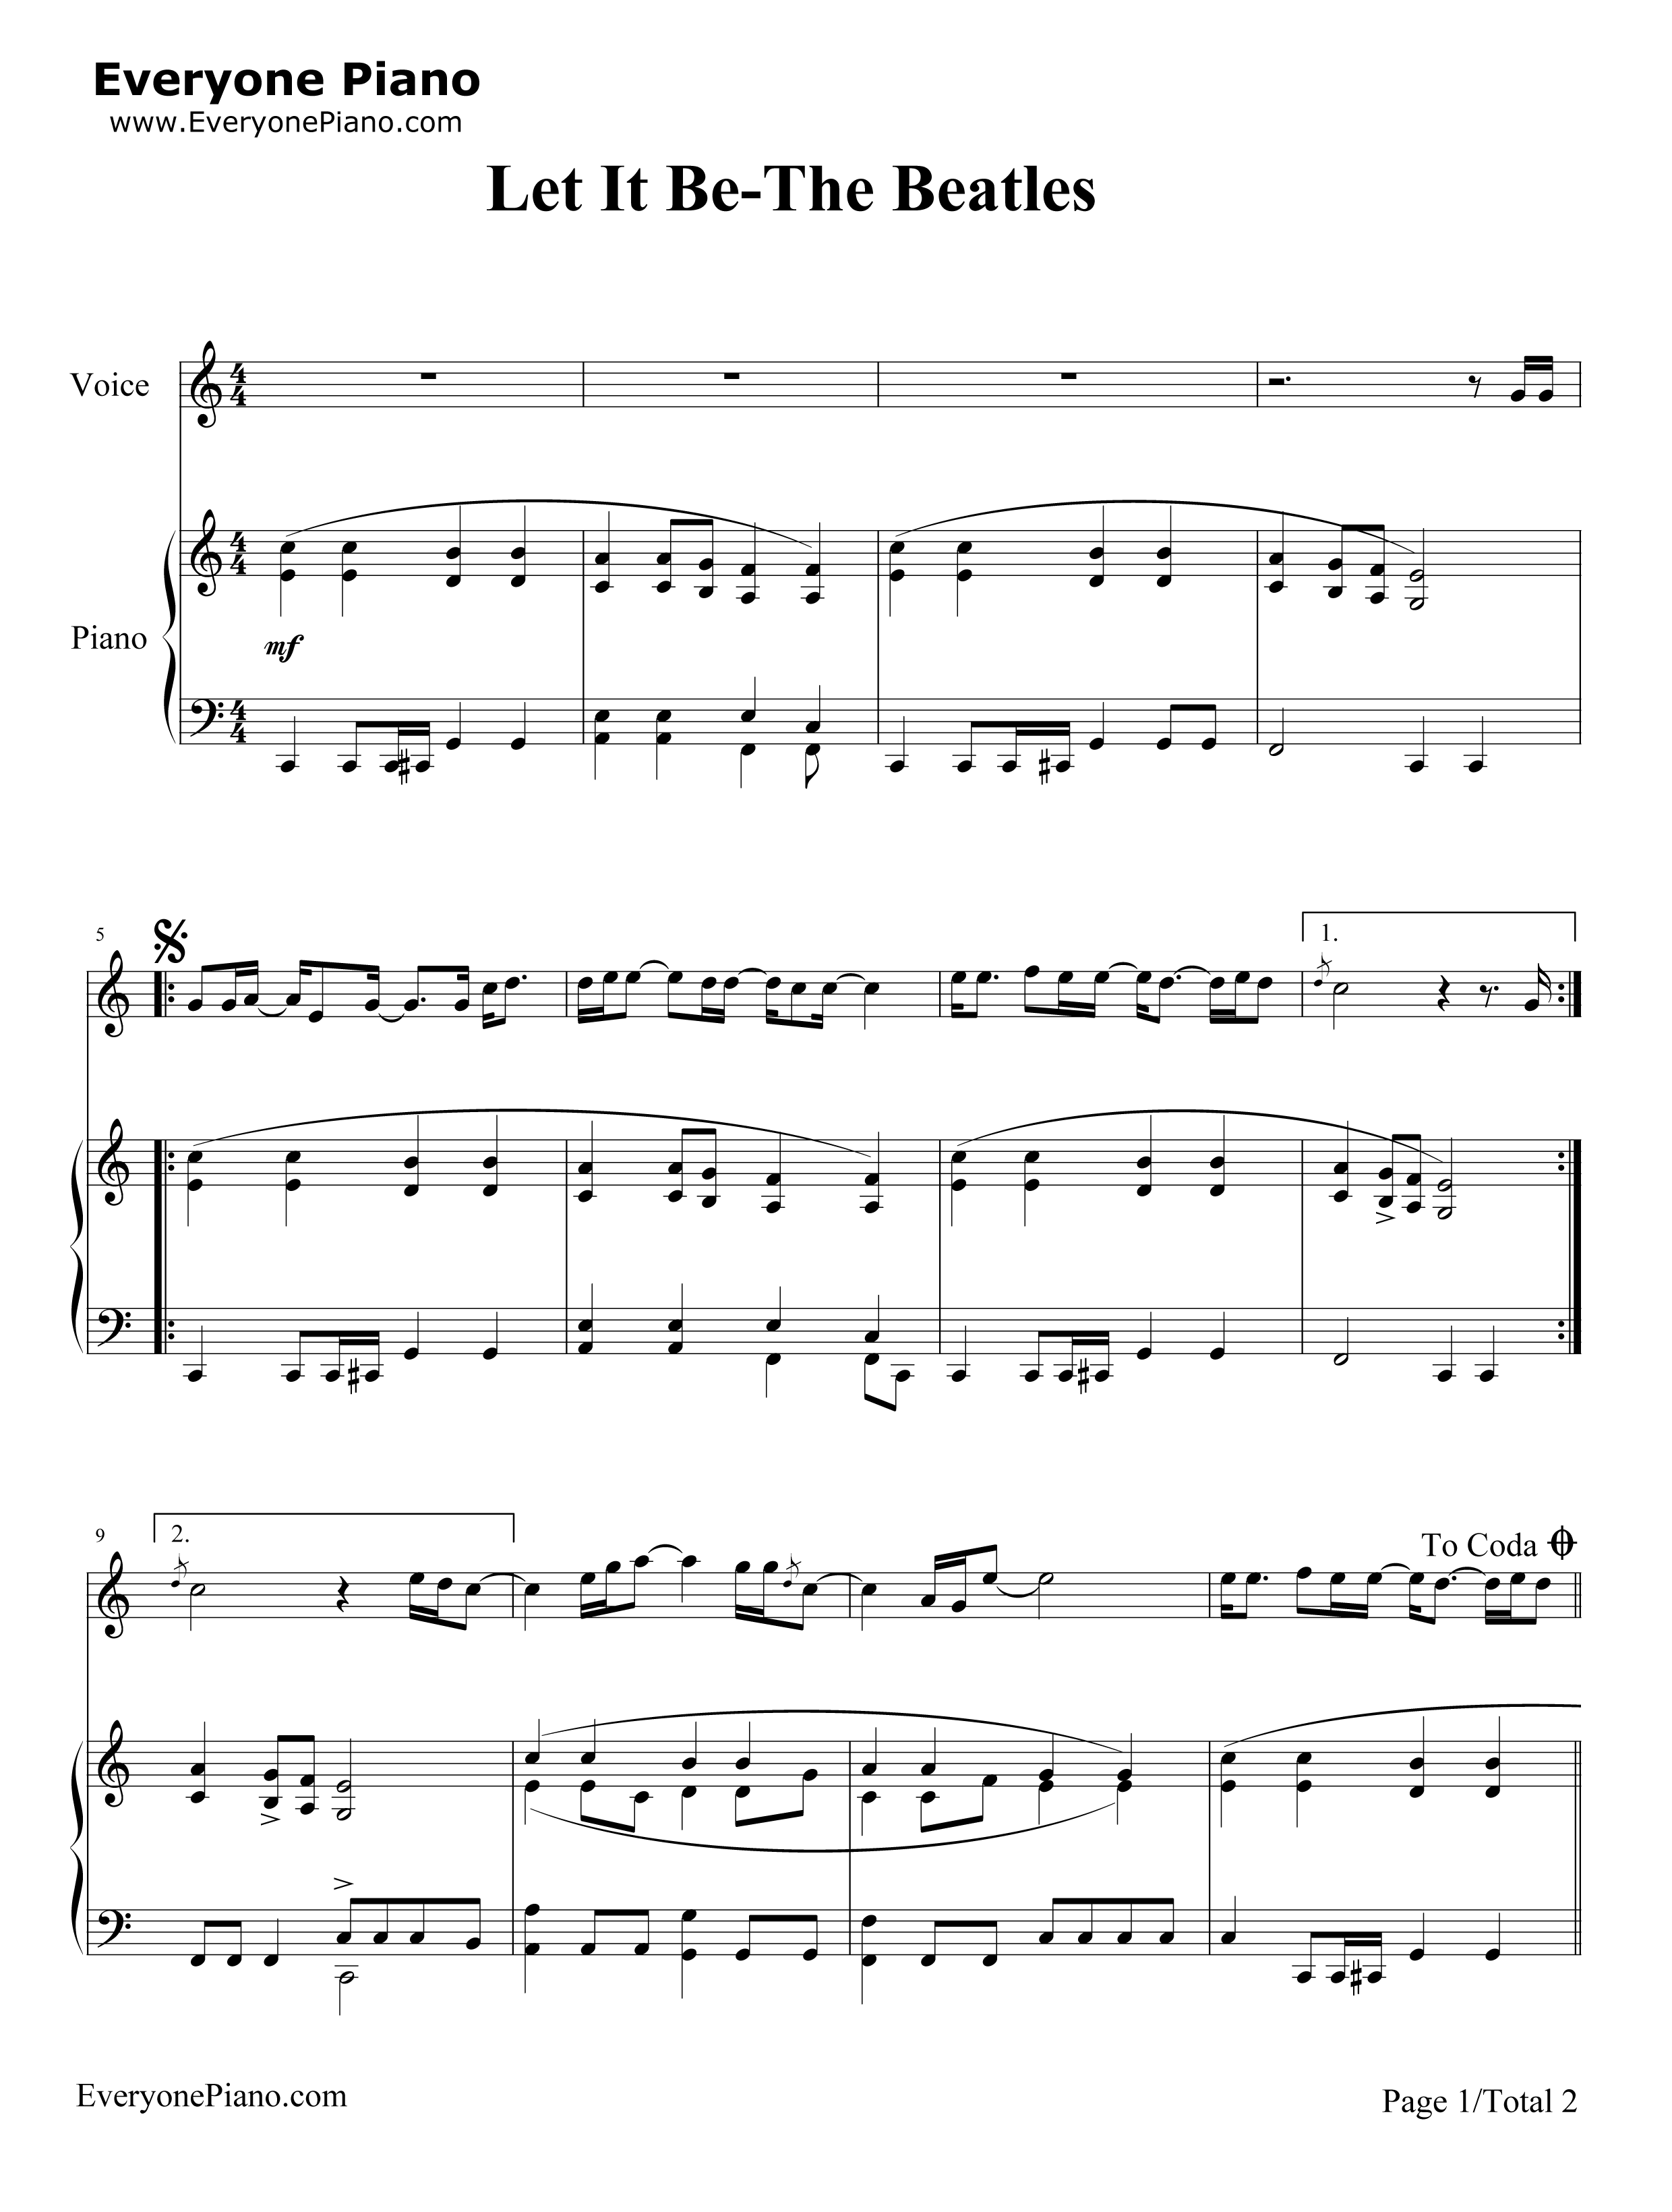 Let It Be-The Beatles Stave Preview 1-Free Piano Sheet Music u0026 Piano Chords